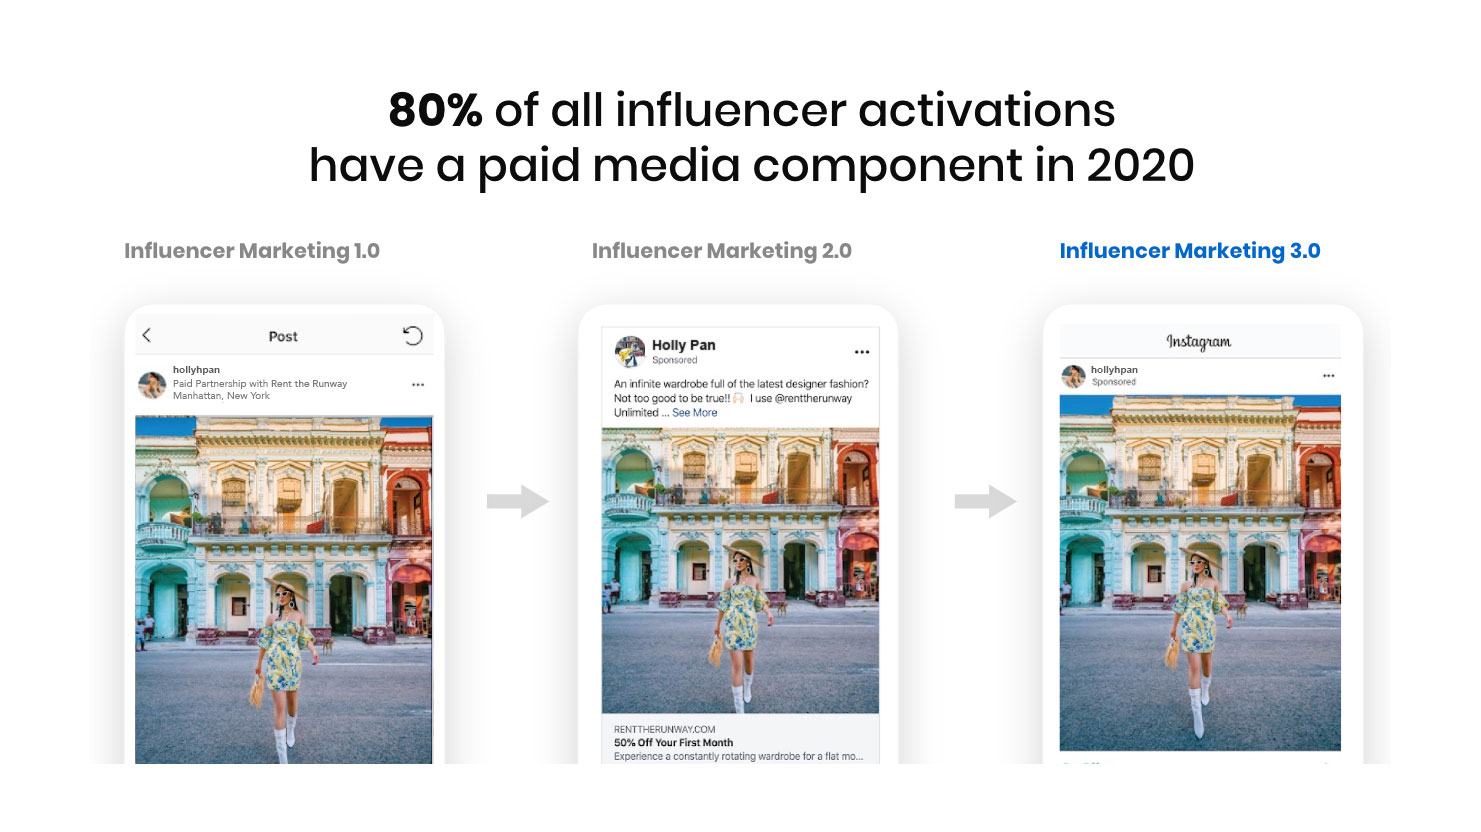 A detailed comparison of the best way to amplify influencer marketing with paid media